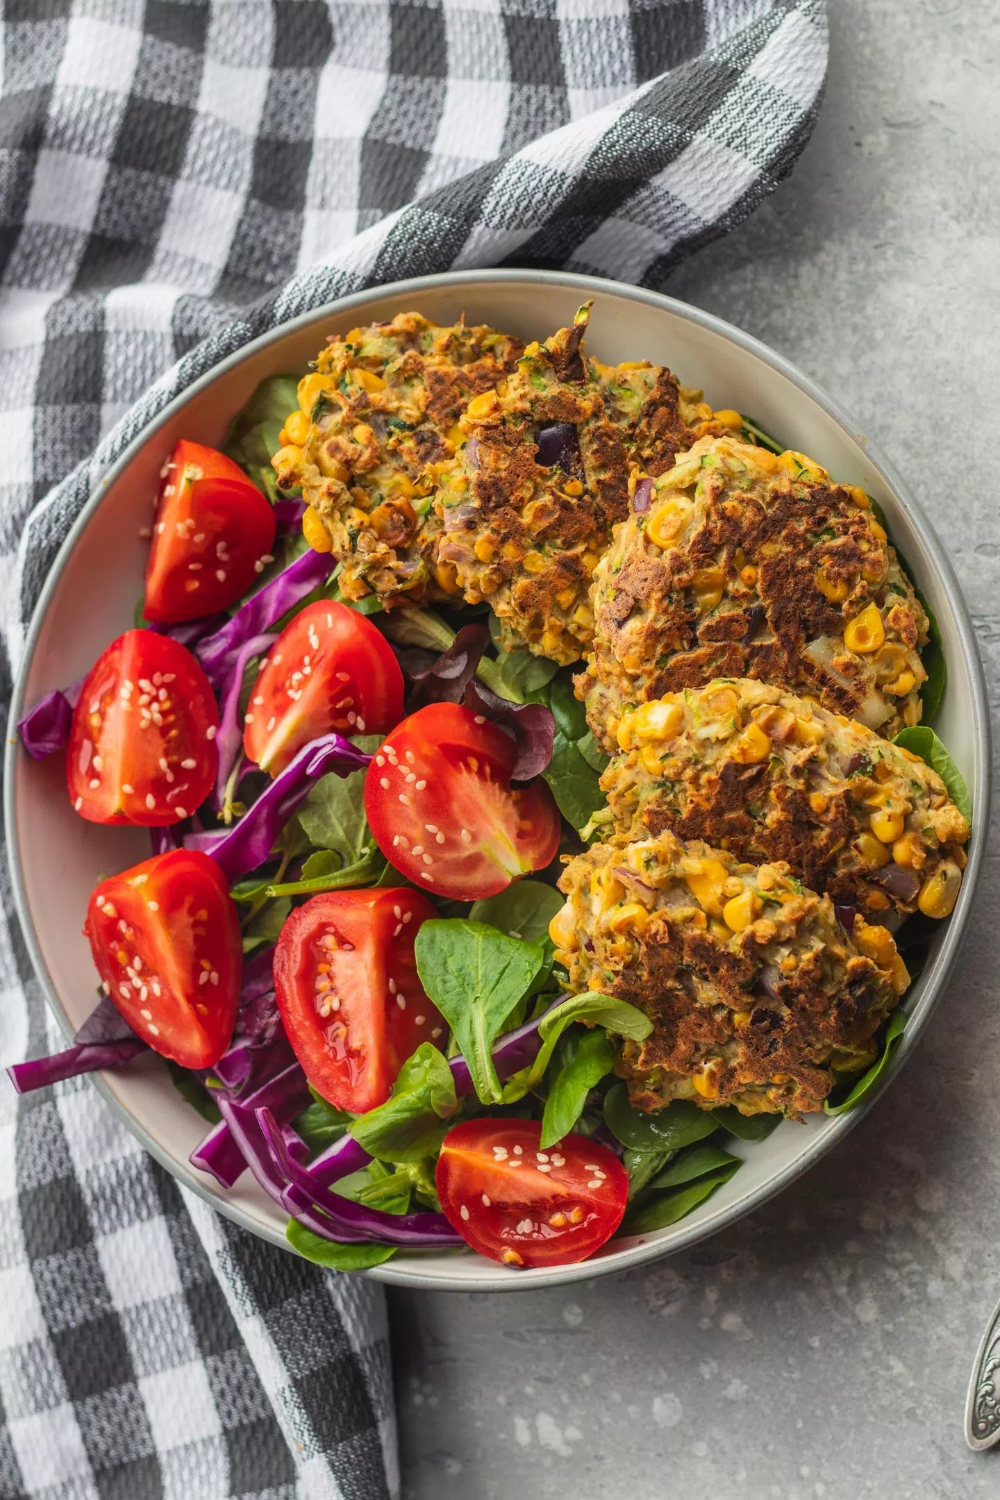 Vegan Zucchini Fritters With Red Lentils (Gluten-free)